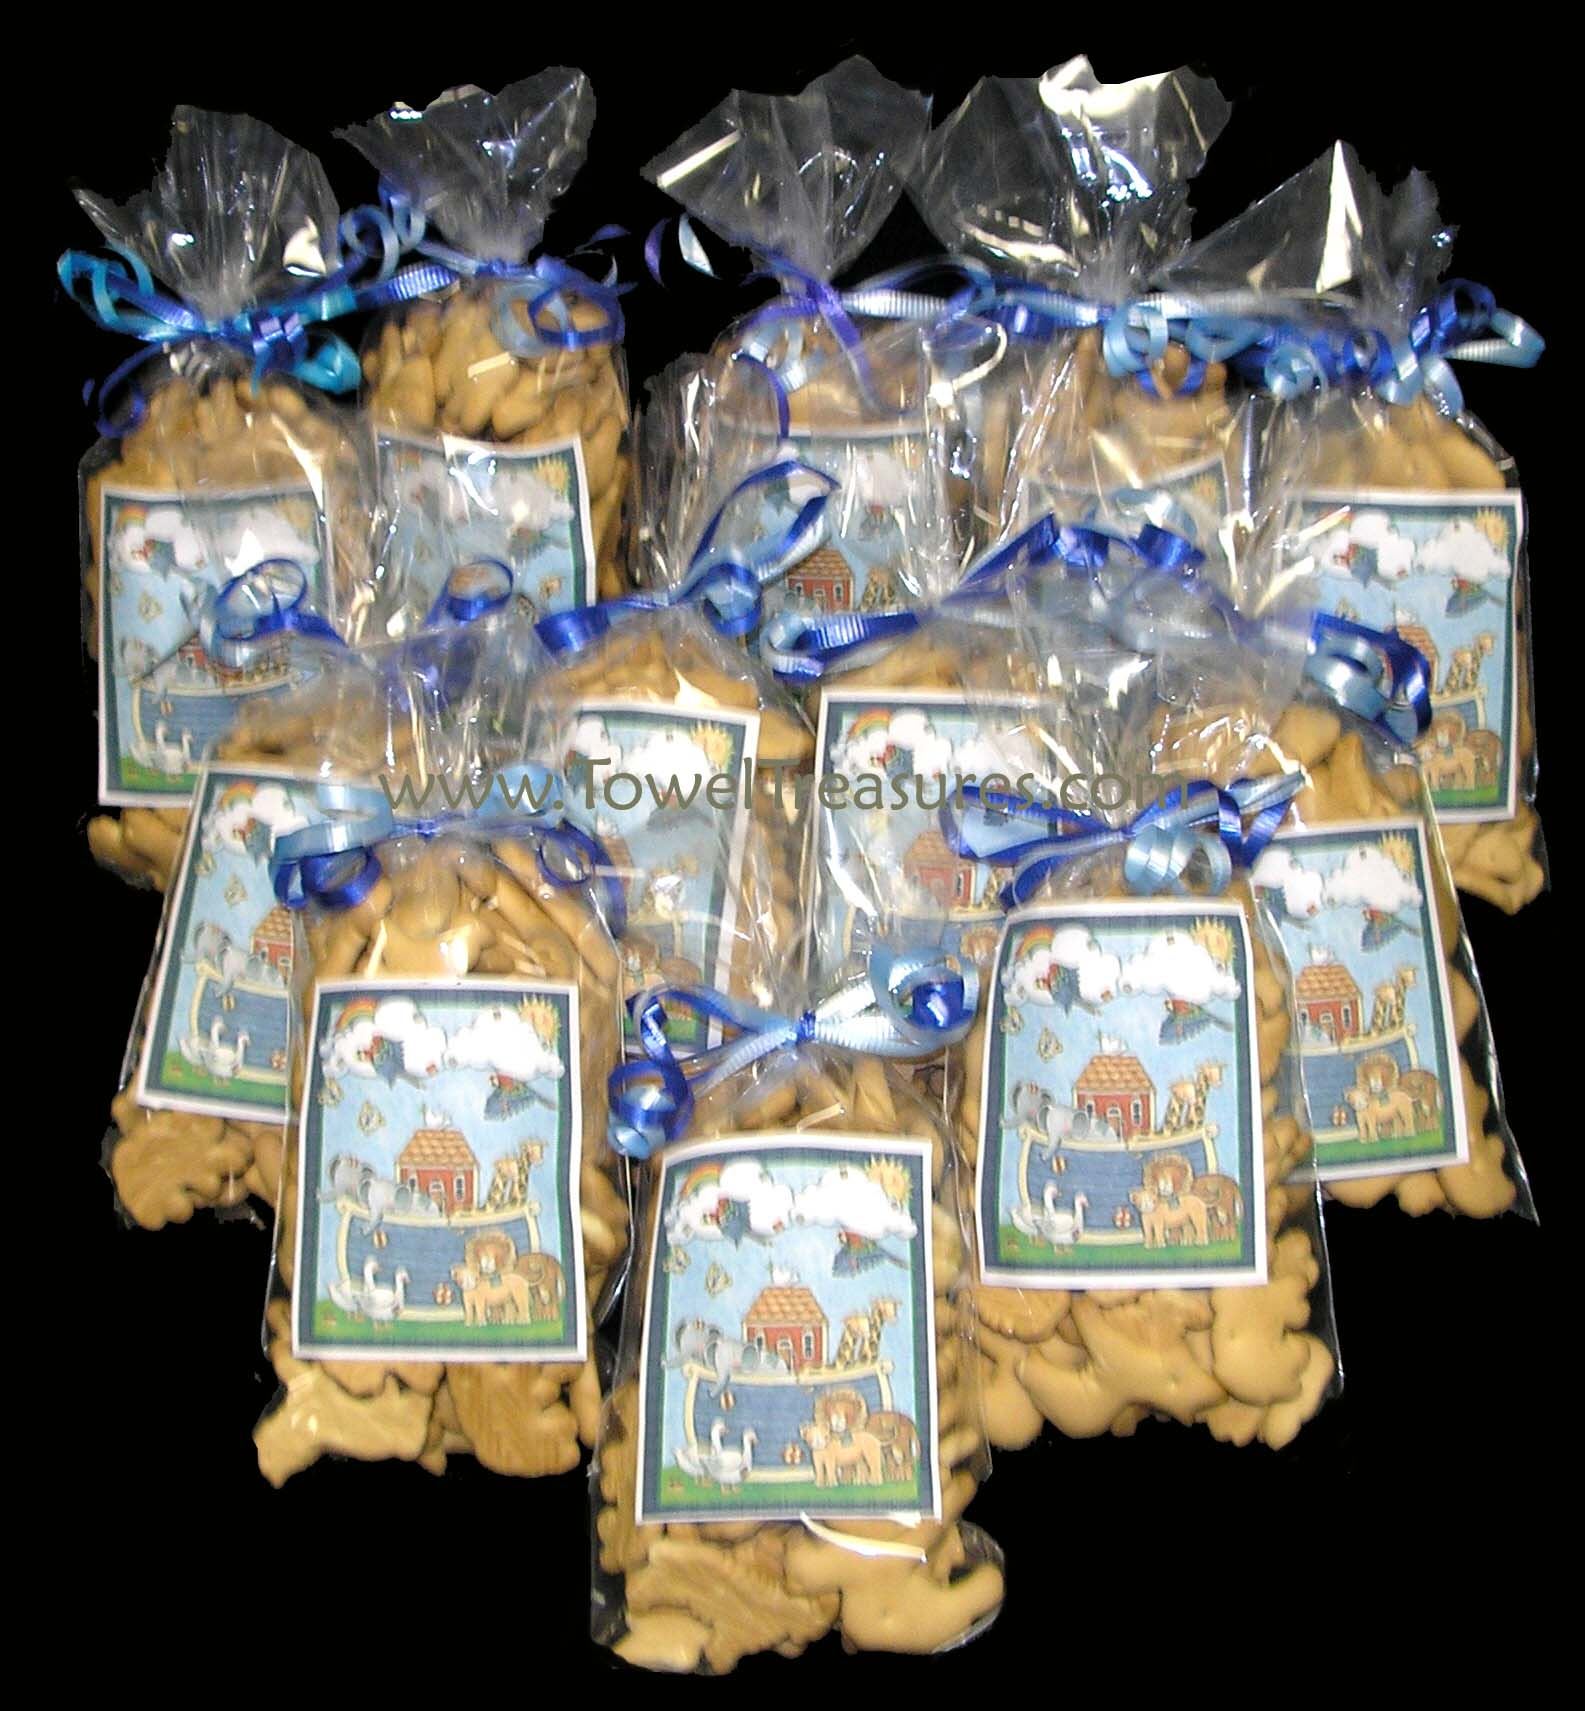 Baby Shower Favors With Animal Crackers ~ The smile for awhile company ideas tsfaci